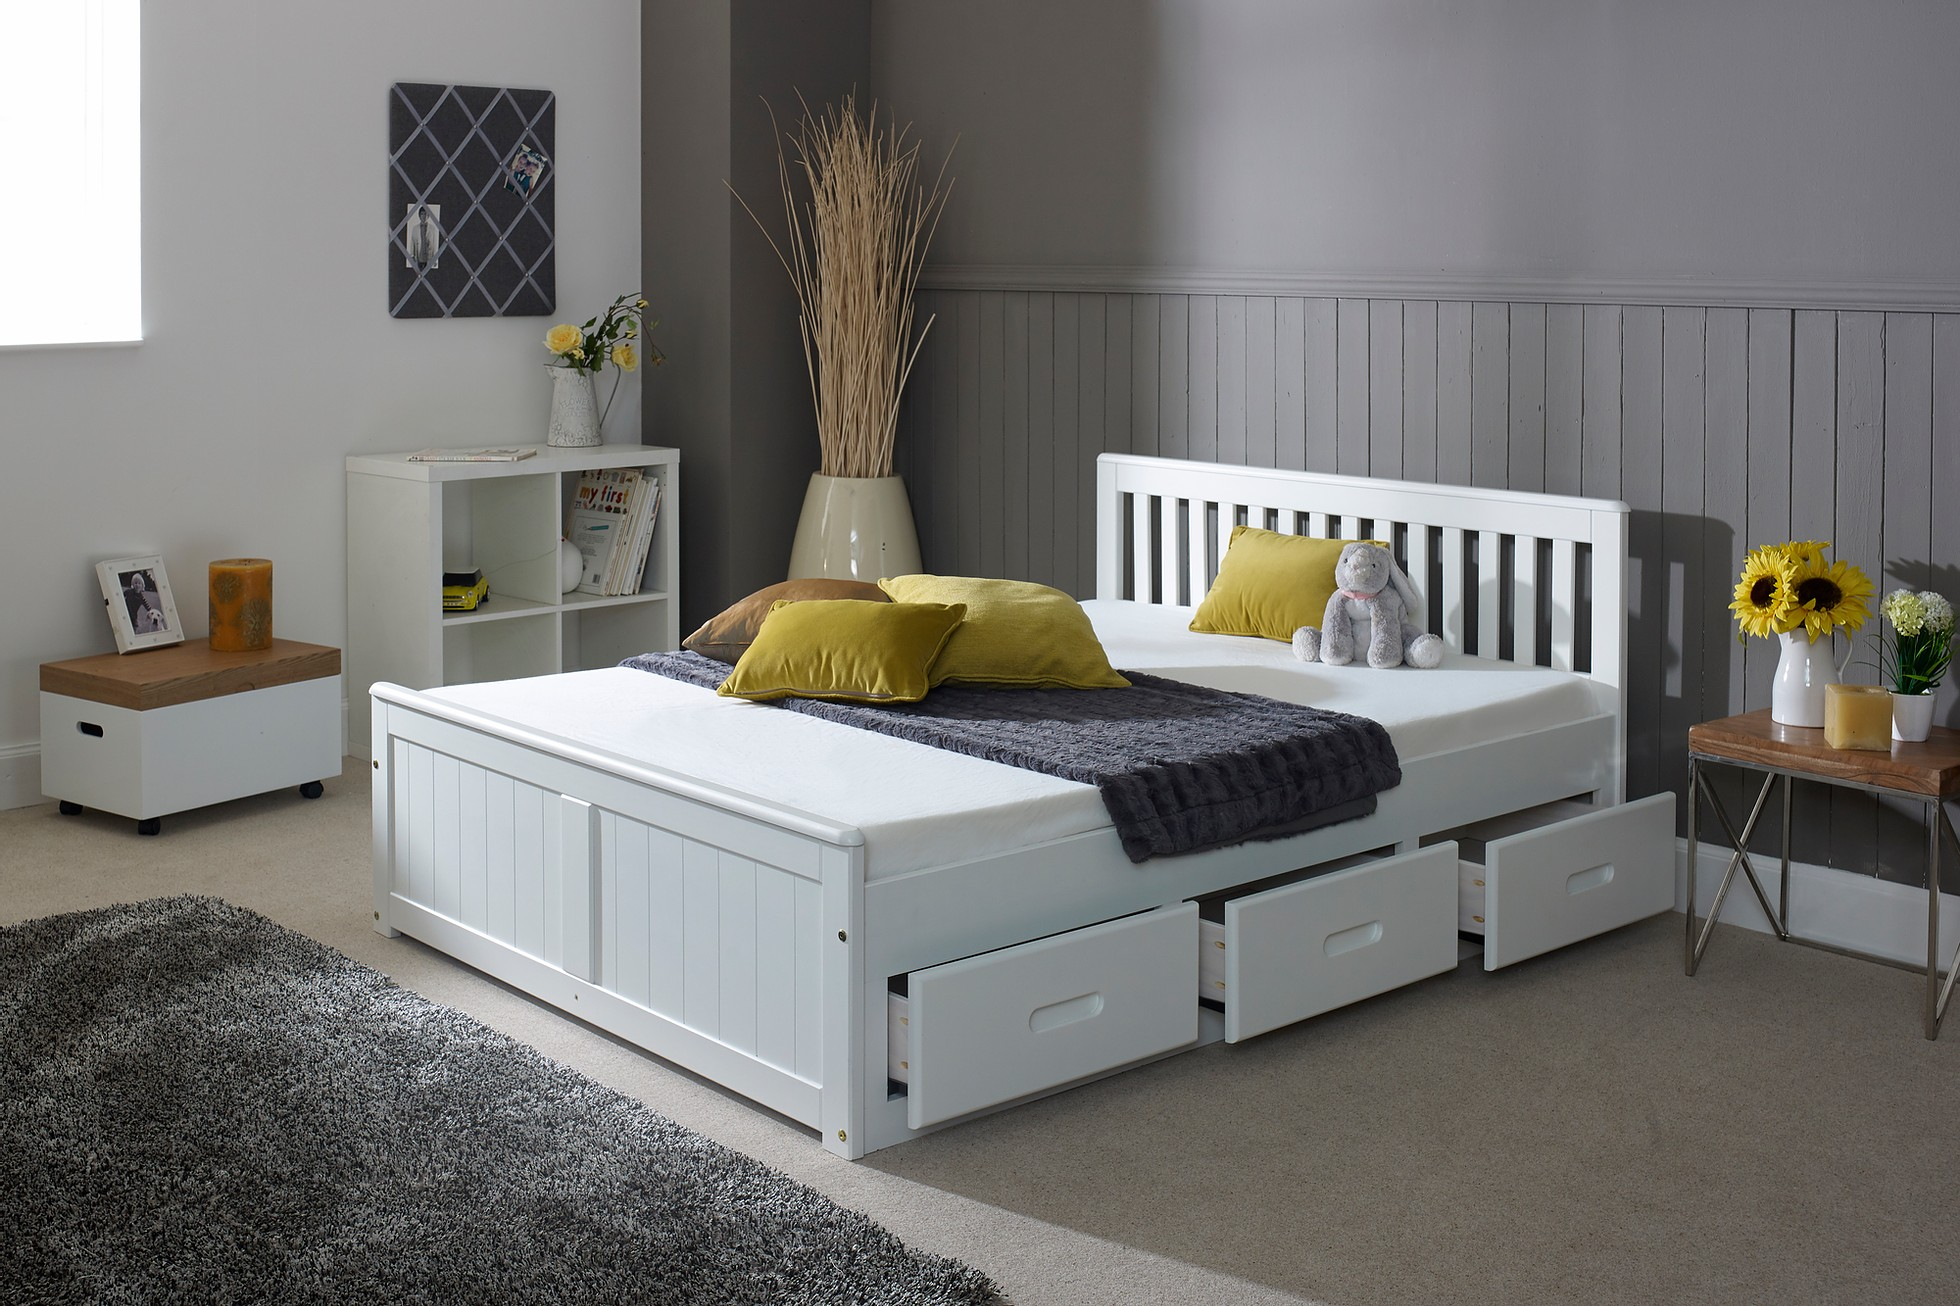 Double Mission Bed Bristol Beds Divan Beds Pine Beds Bunk Beds Metal Beds Mattresses And More